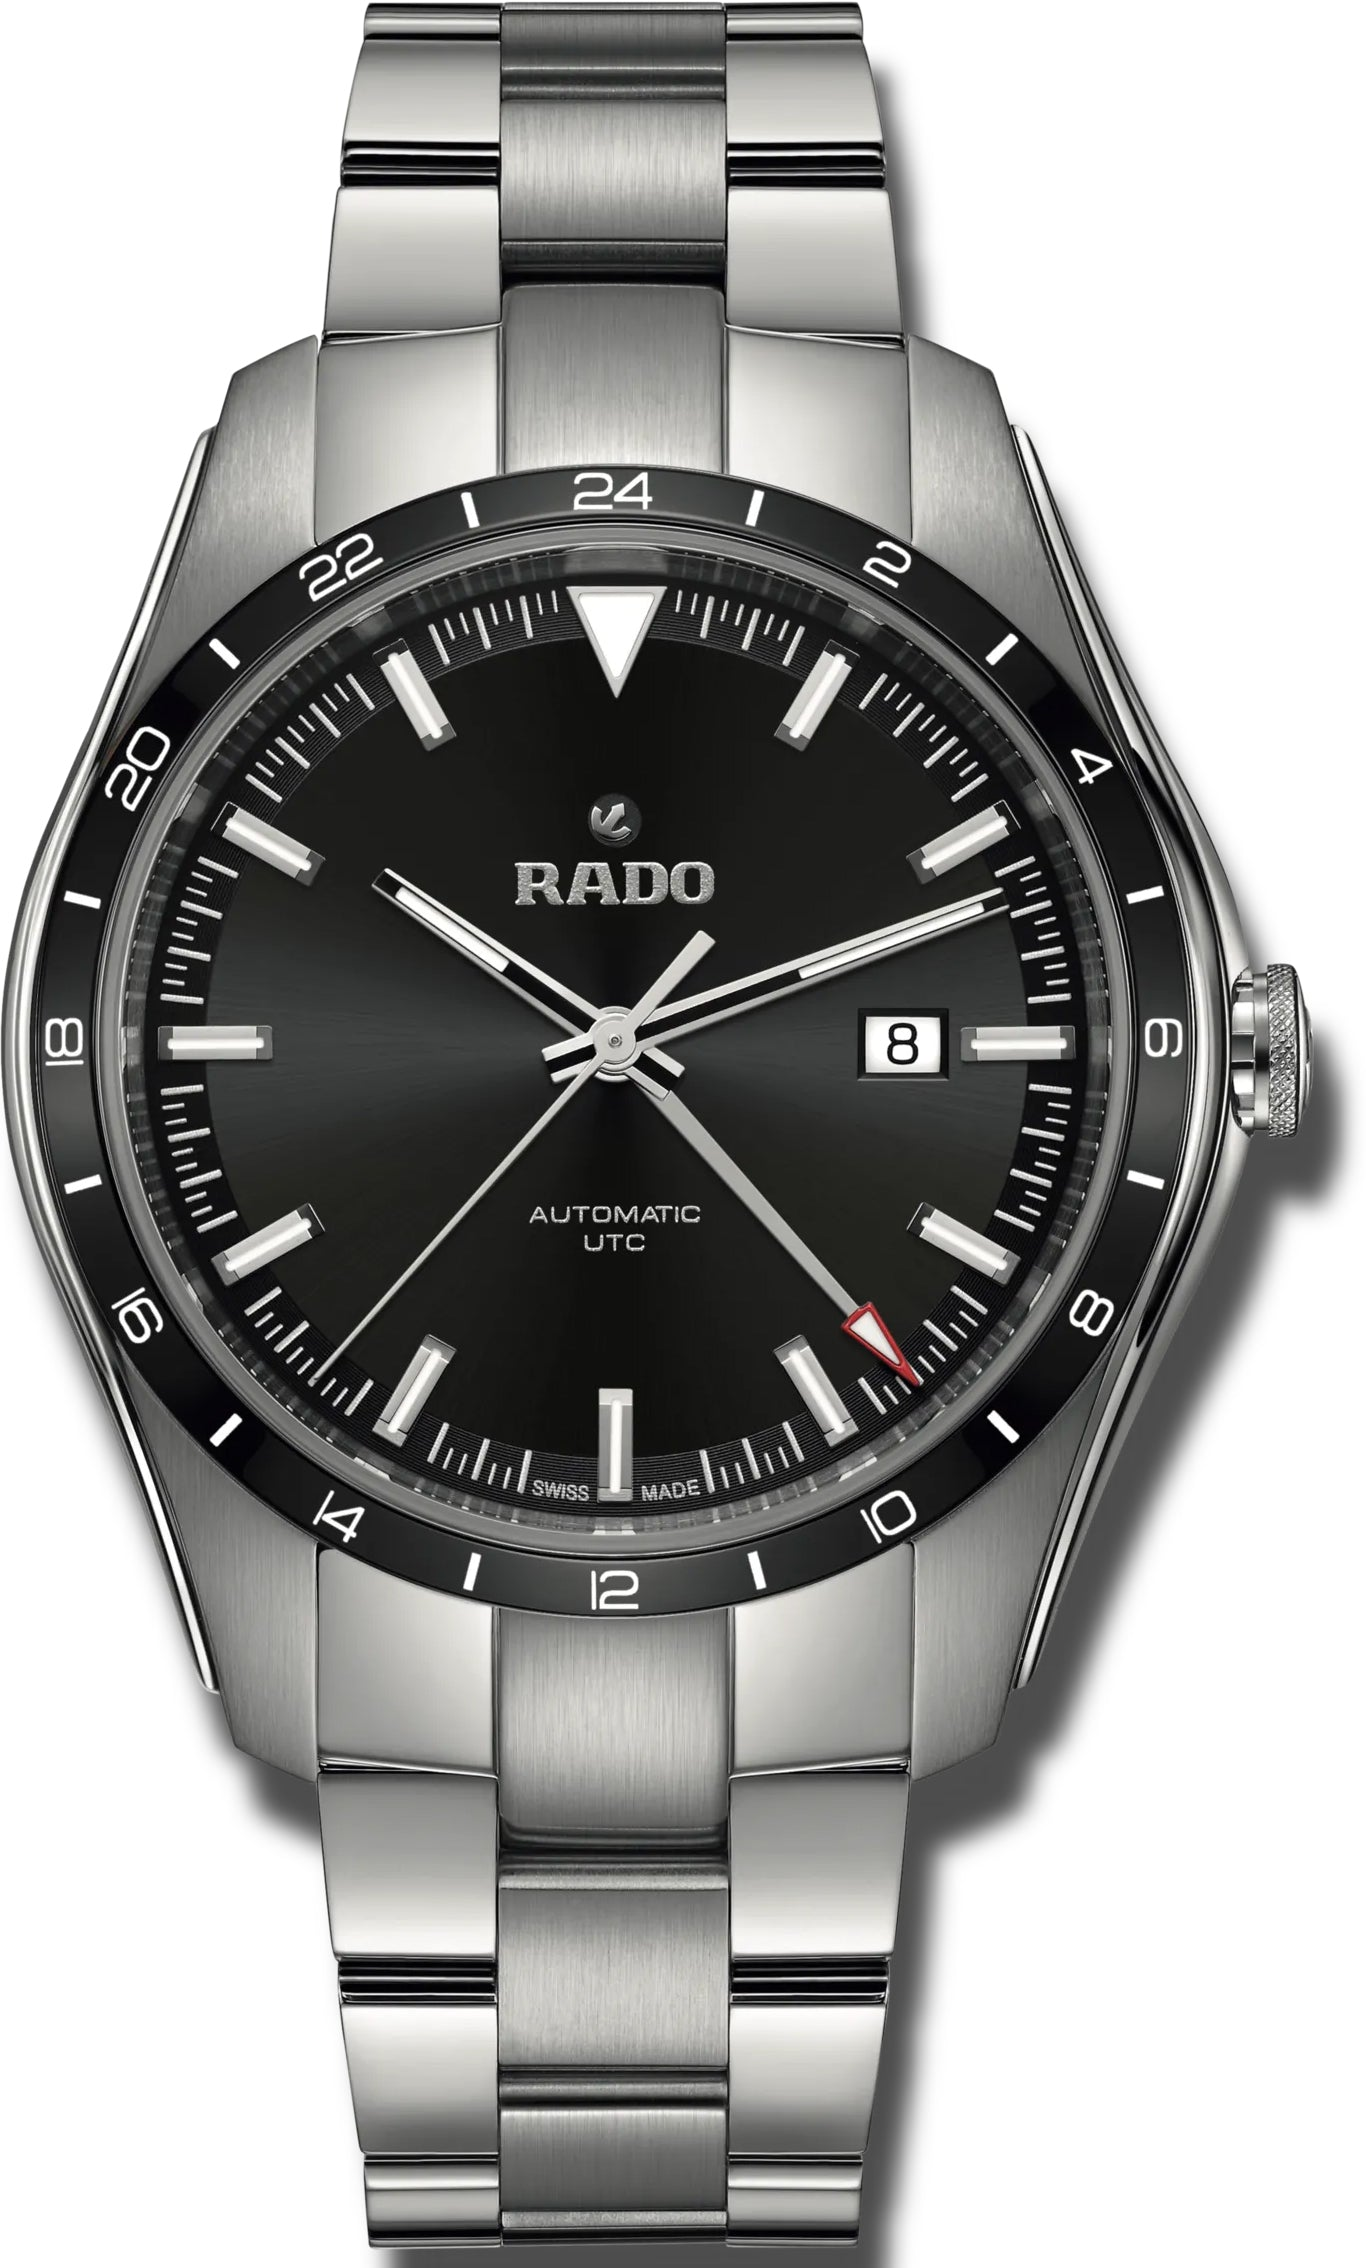 Rado Watch Hyperchrome Automatic Utc Limited Edition